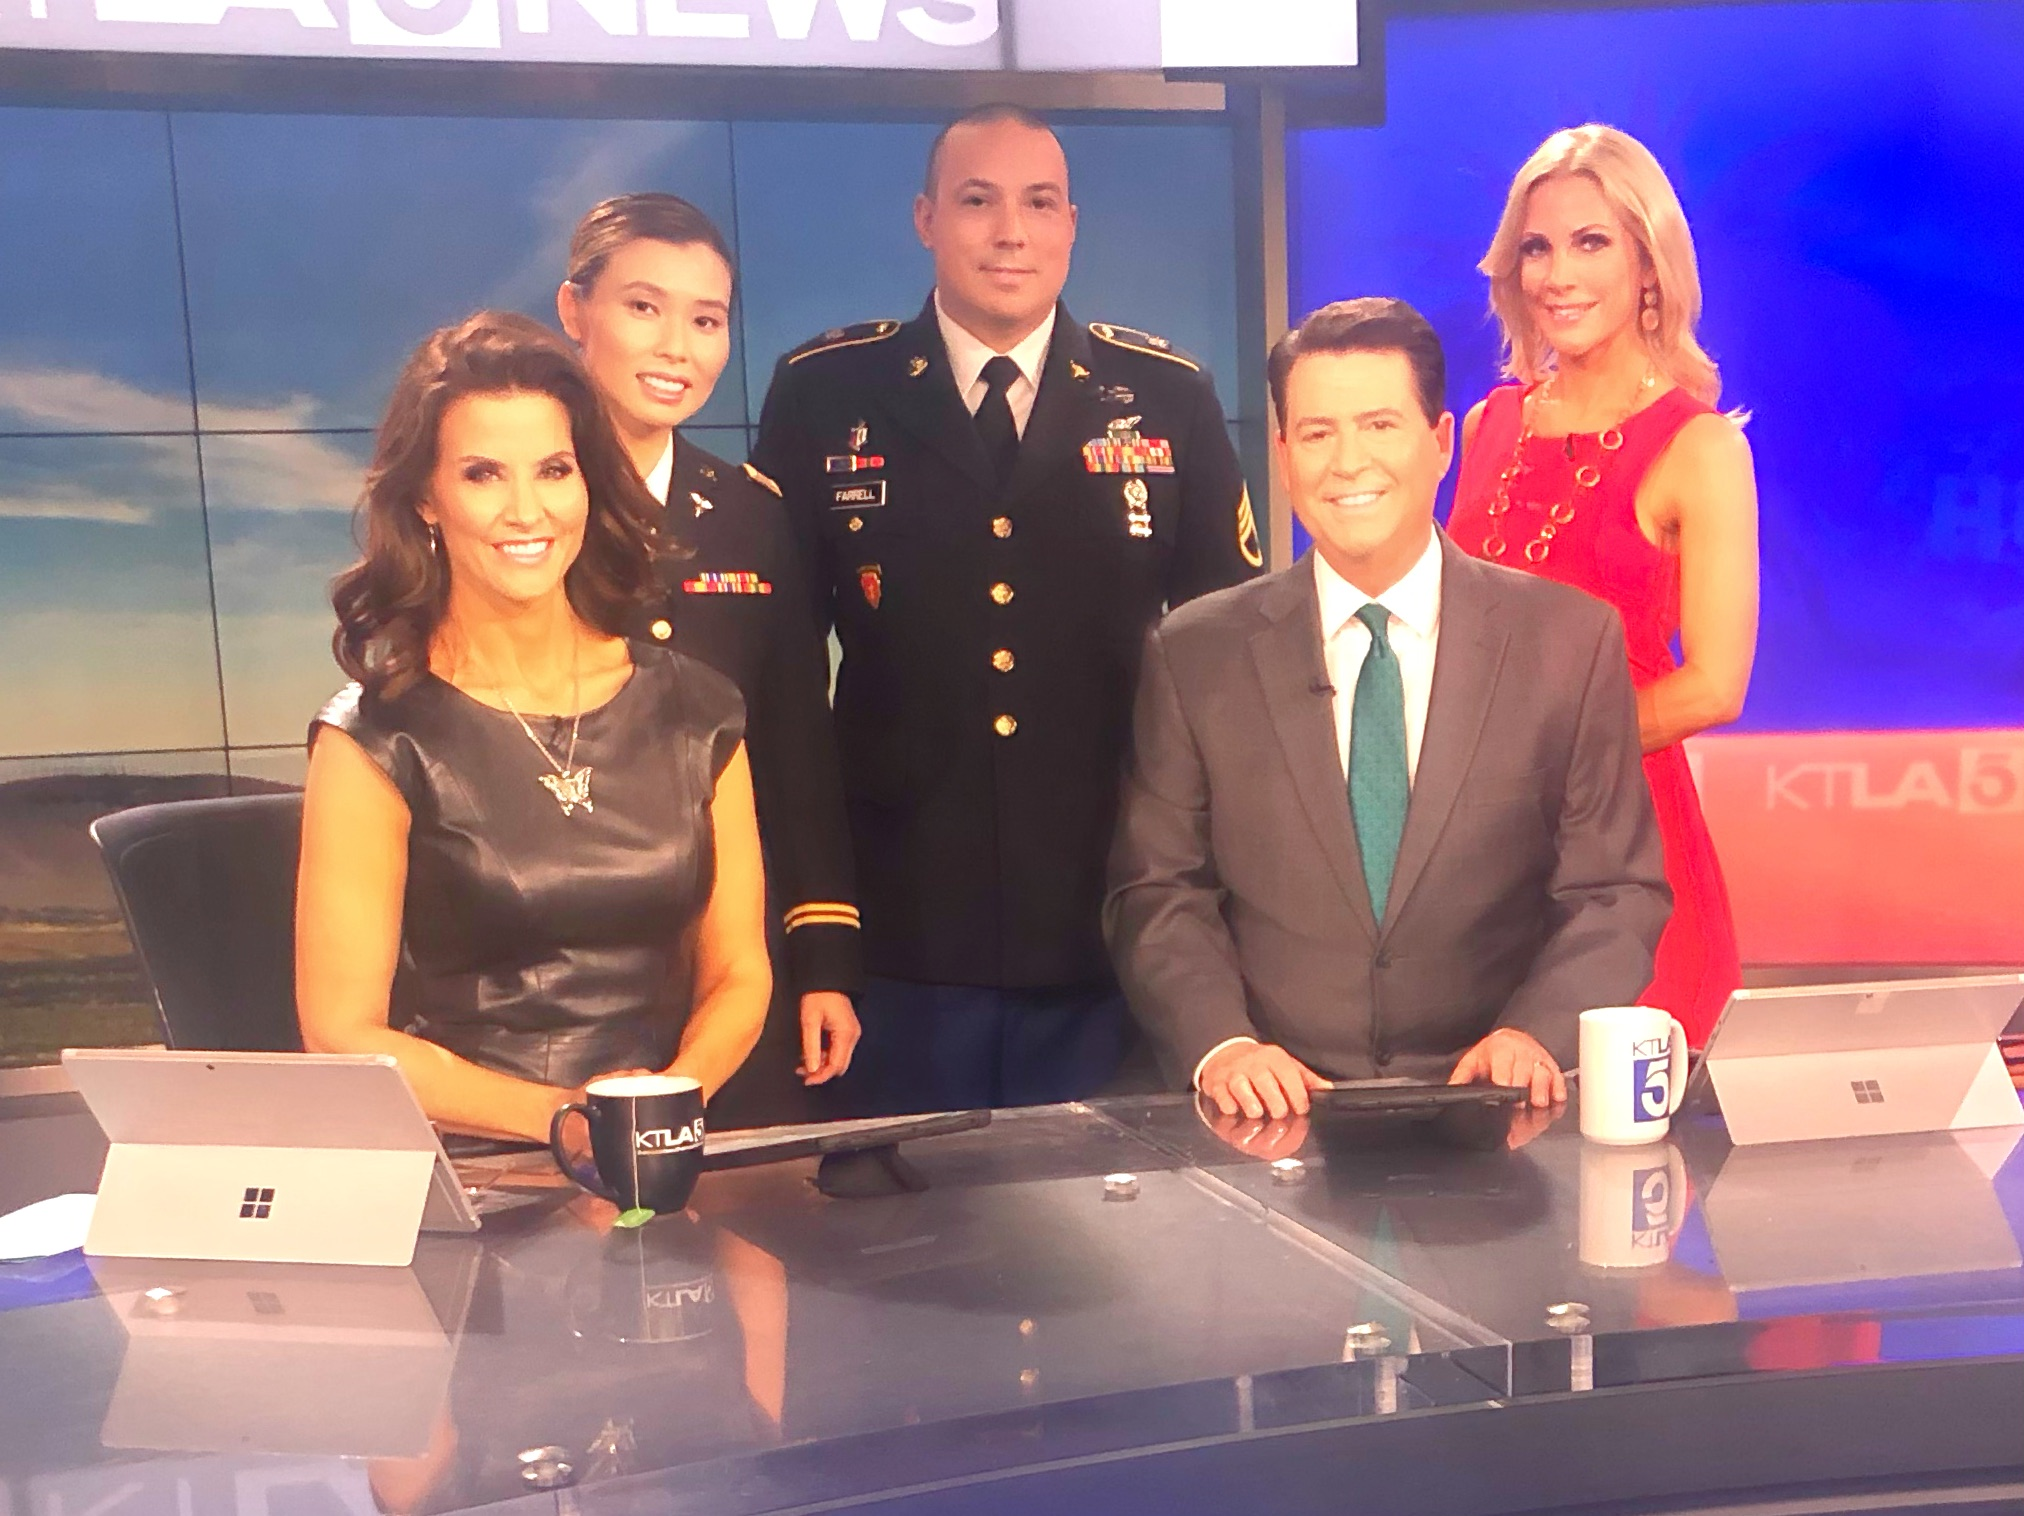 KTLA CHANNEL 5 MORNING NEWS - Donna Quach and Sergeant Chuck Farrell appearing as guests on KTLA Channel 5 Los Angeles Morning News, discussing suicide prevention and awareness among veterans.